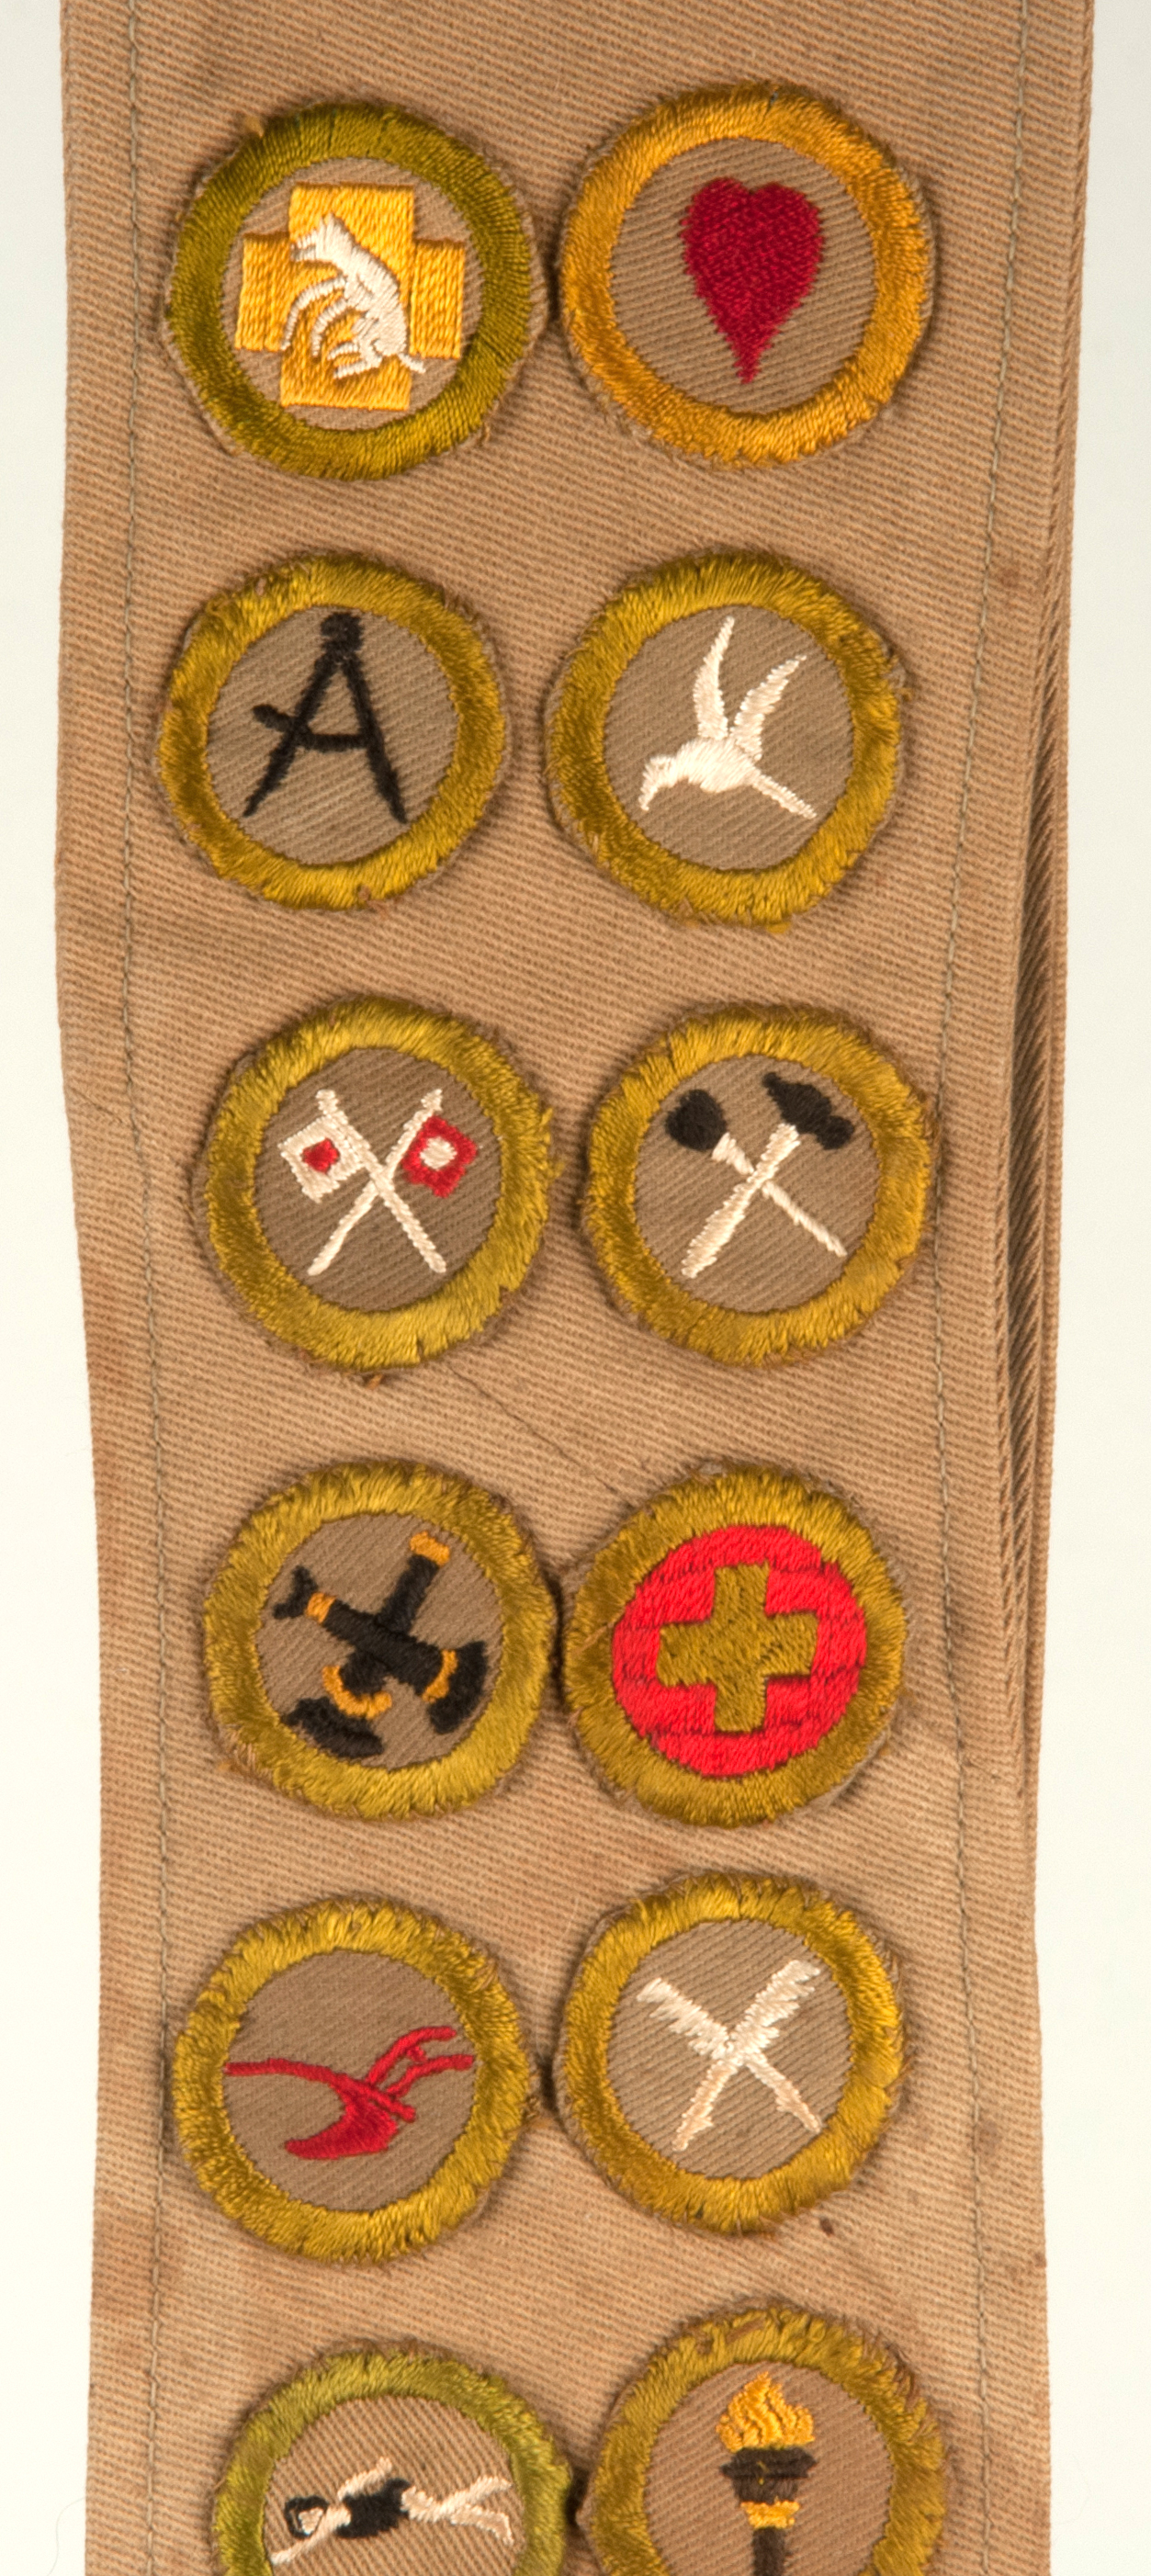 S Boy Scout Sash With Eagle And 24 Merit Badges